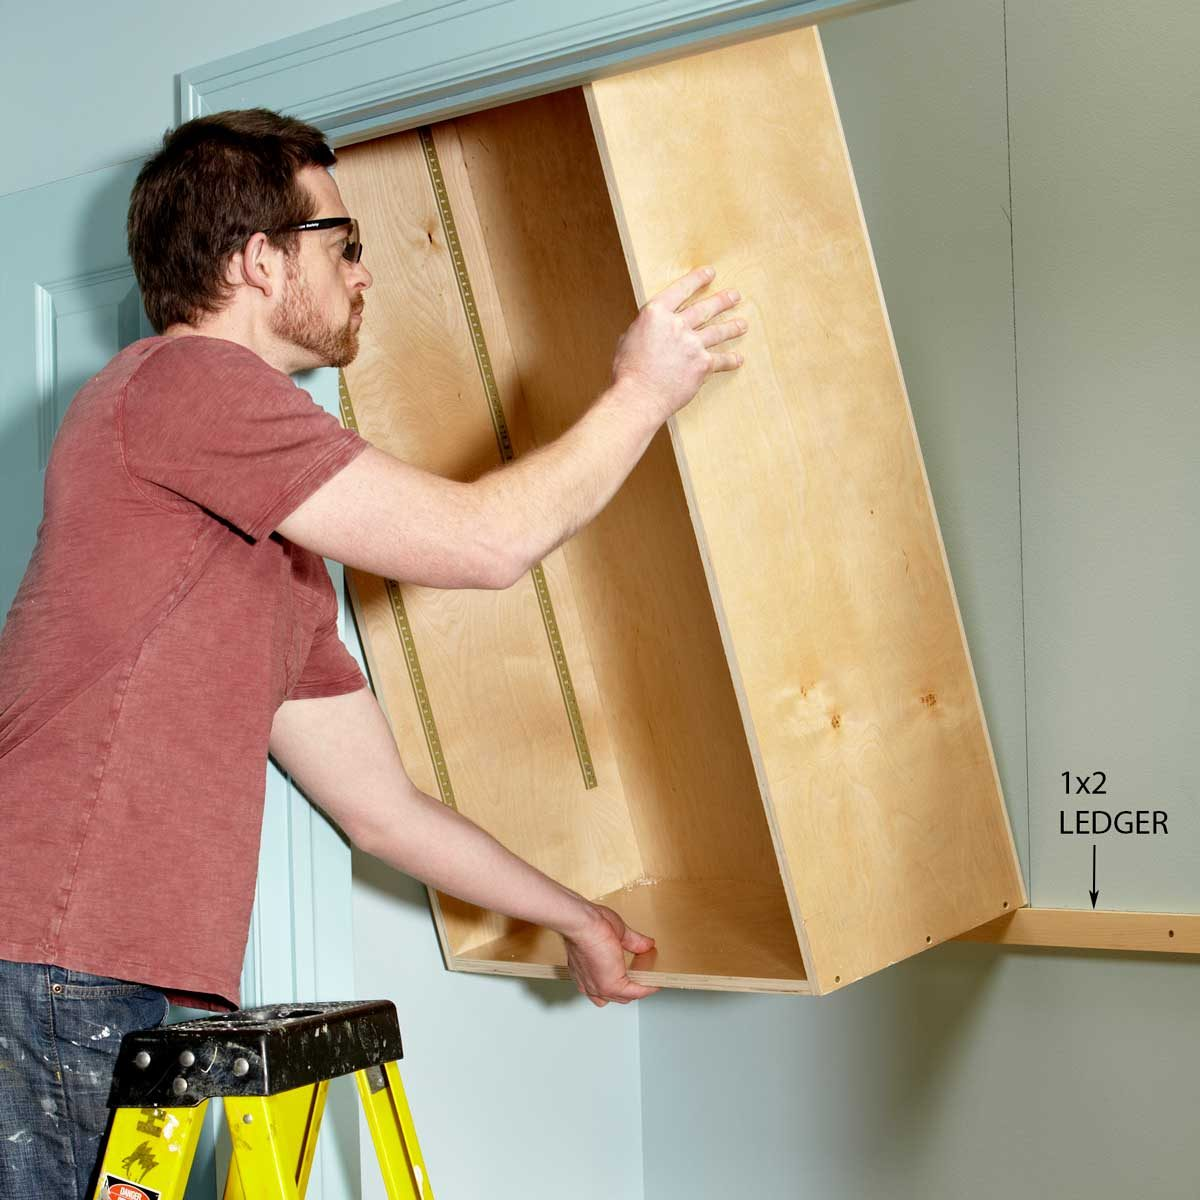 Install the cabinets